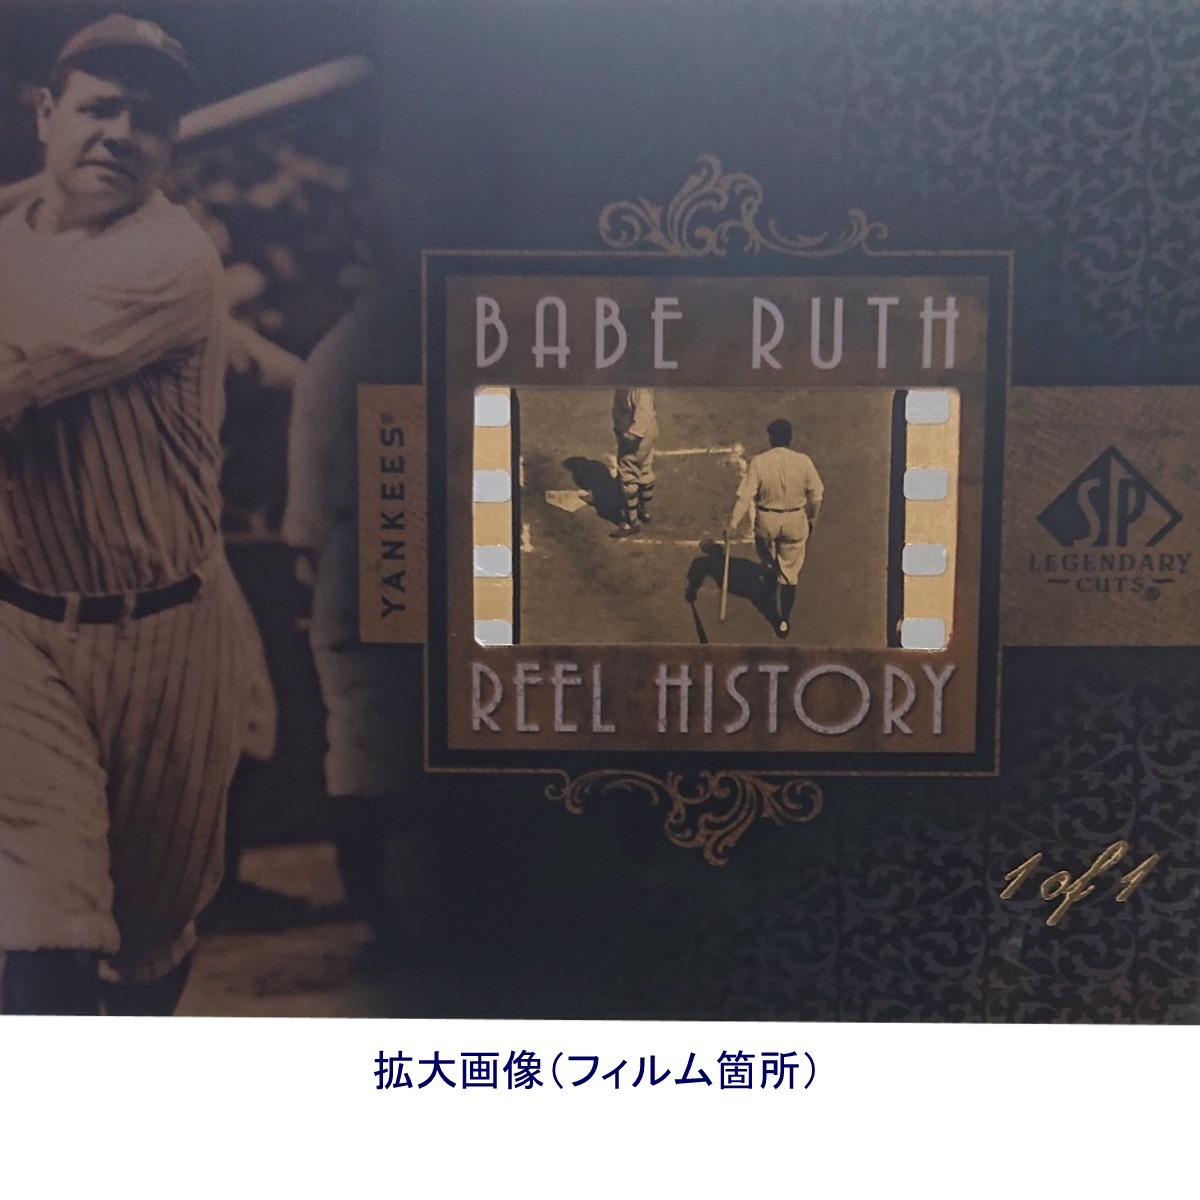 【1 of 1 Film】 Babe Ruth 2007 UD Sp Legendary Cuts Babe Ruth Reel History 1枚限定 ■検索:ベーブ・ルース フィルム カード 1/1_画像4